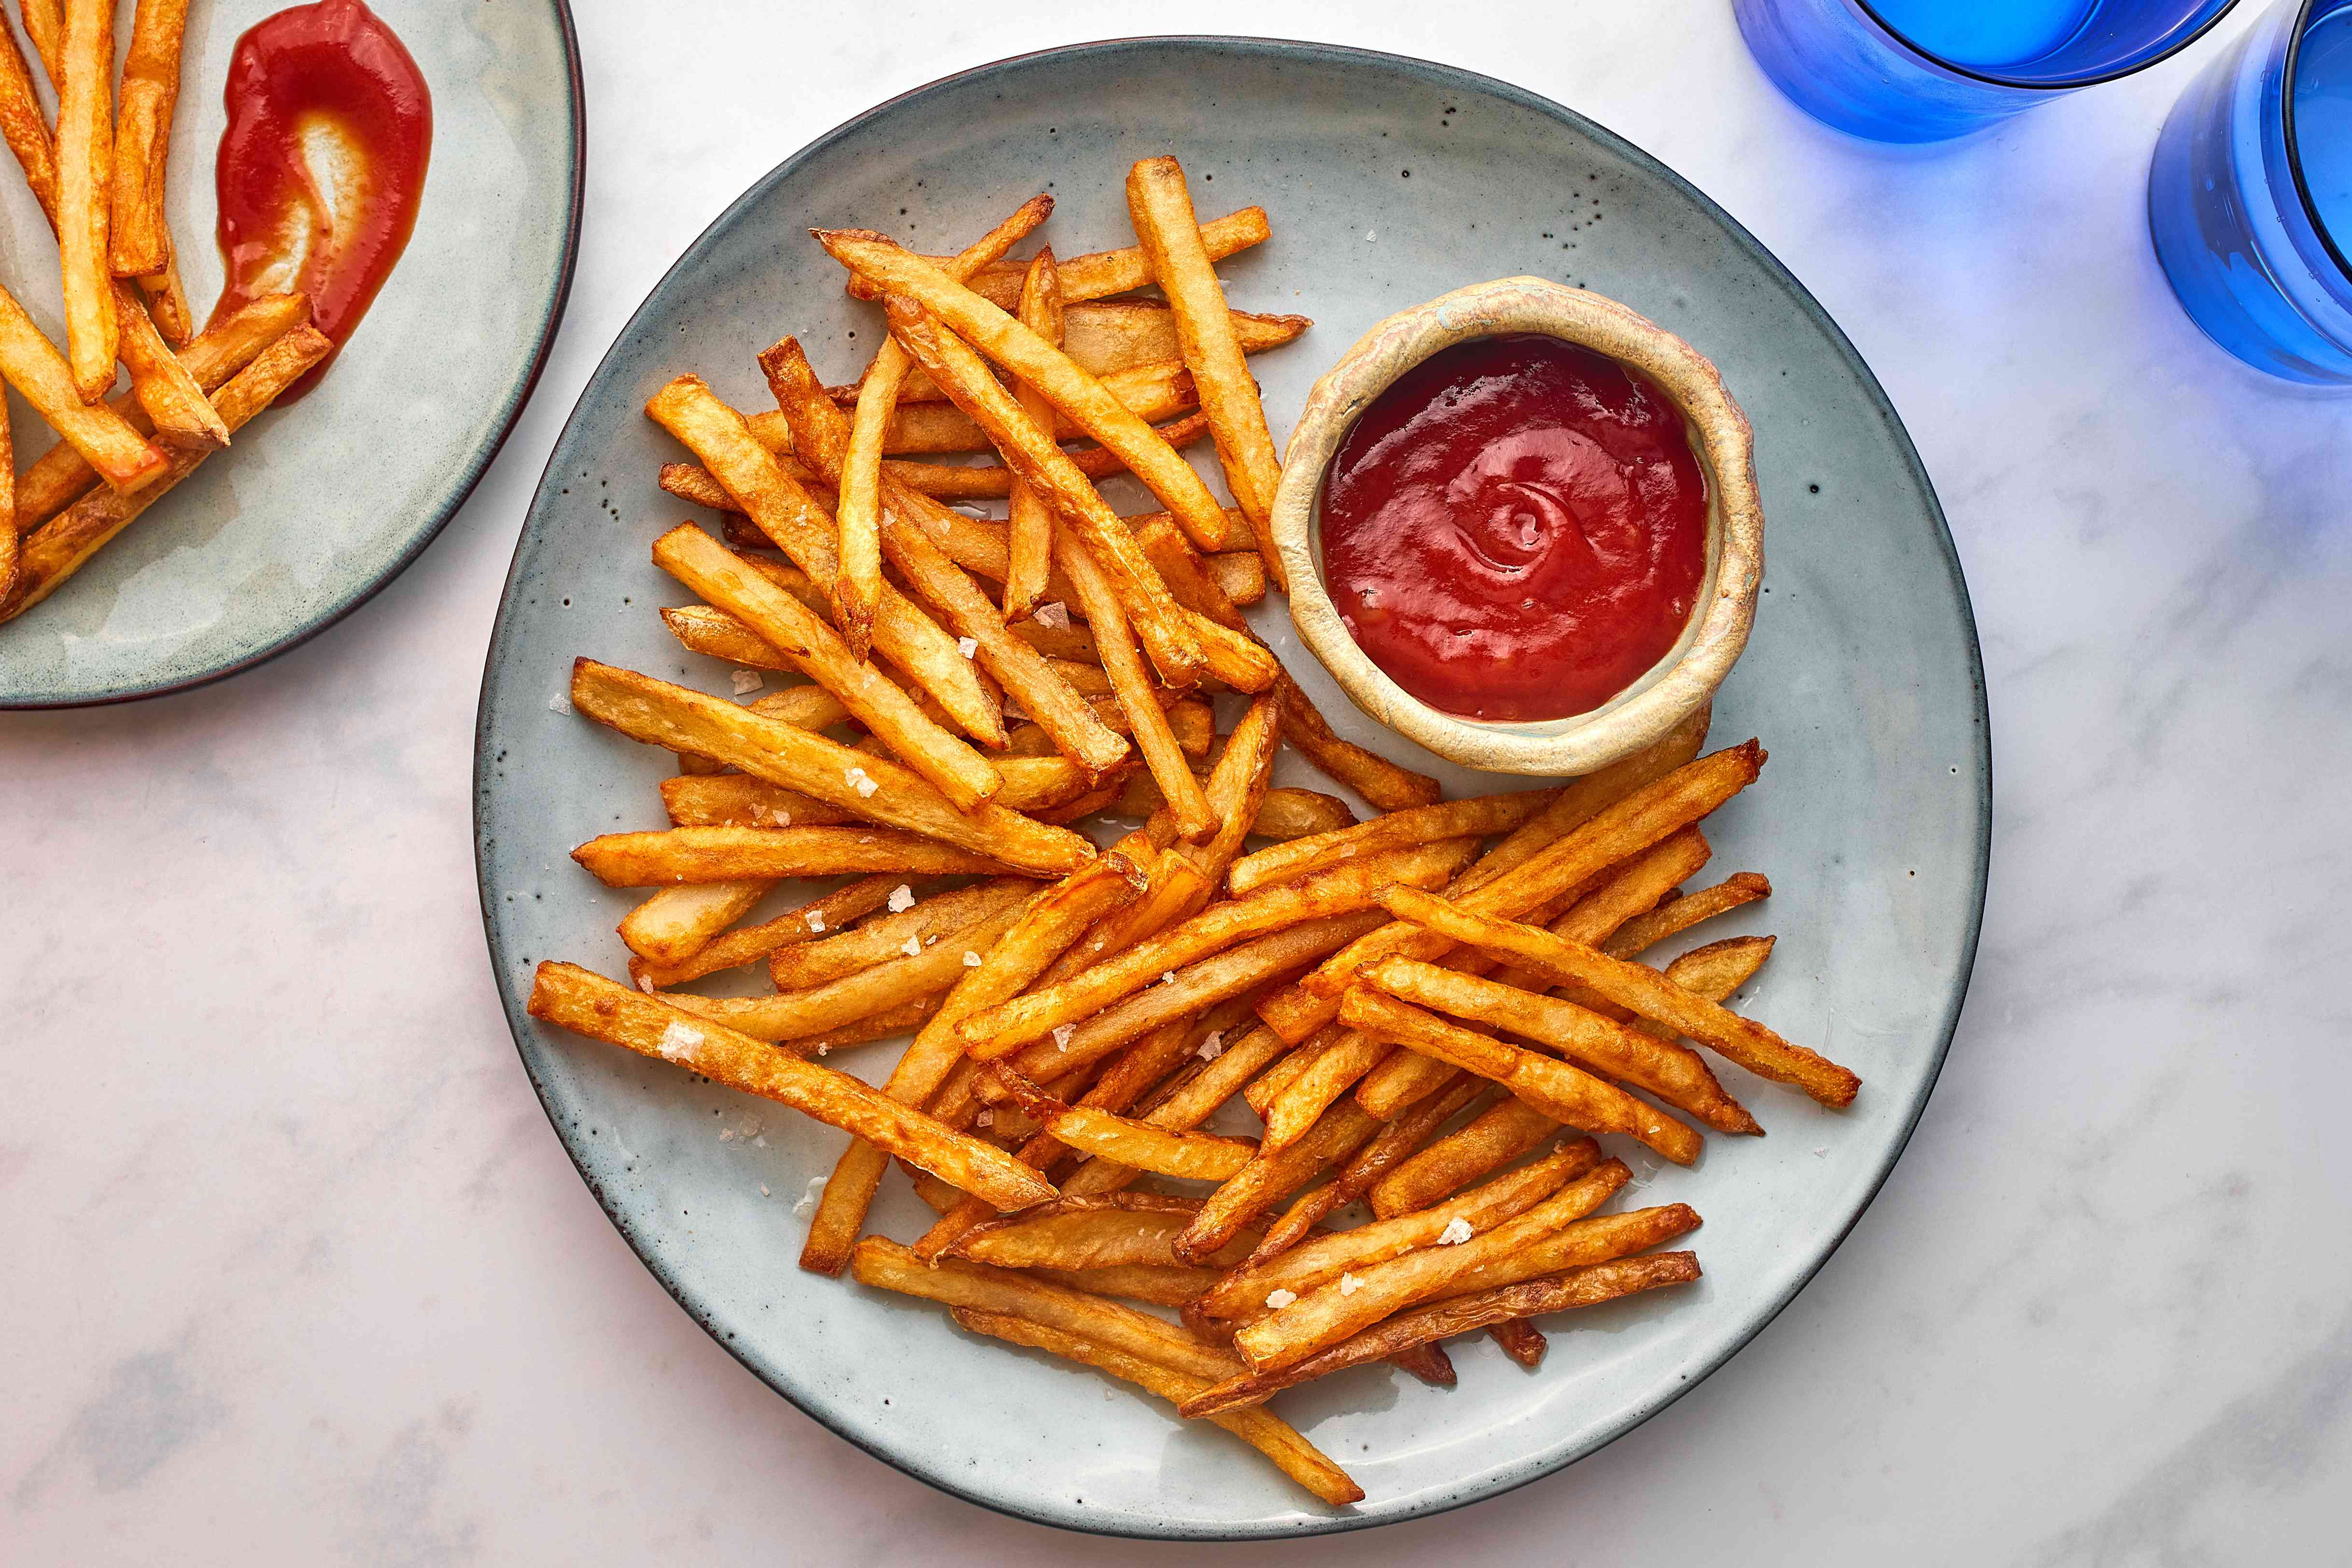 Homemade French Fries on a plate with ketchup